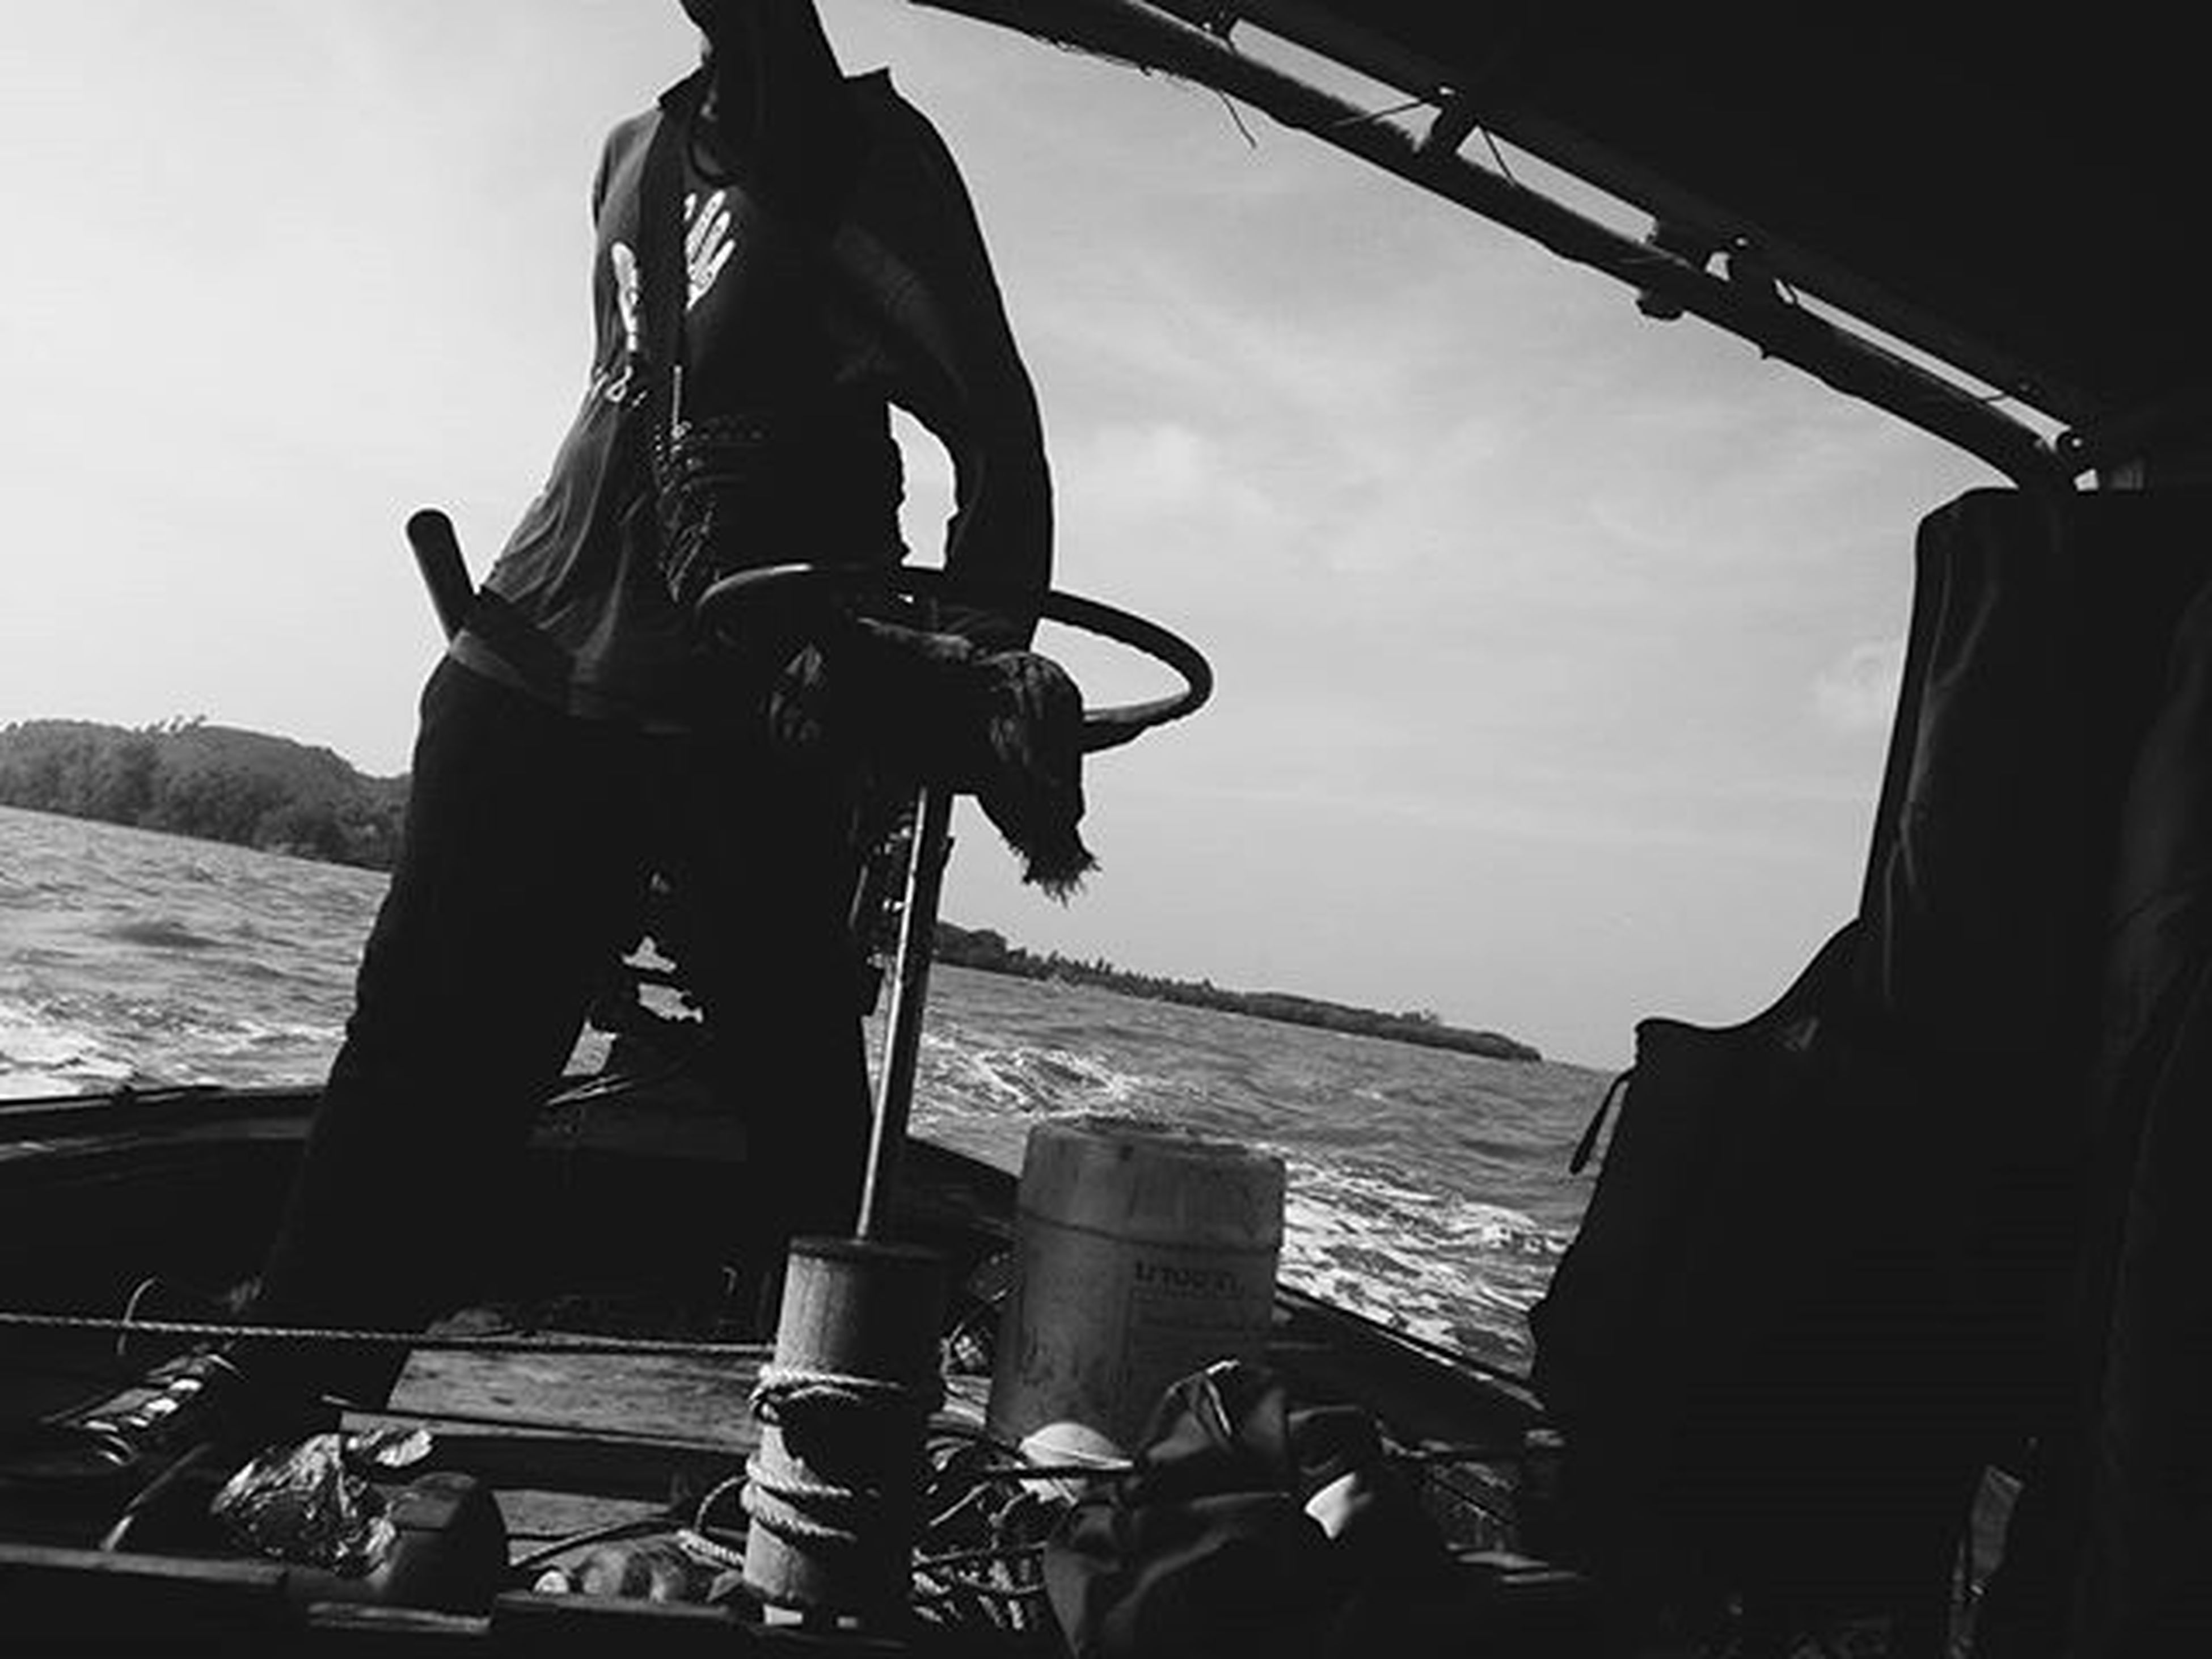 men, water, nautical vessel, transportation, mode of transport, lifestyles, sea, leisure activity, sky, travel, boat, rear view, day, sitting, standing, outdoors, occupation